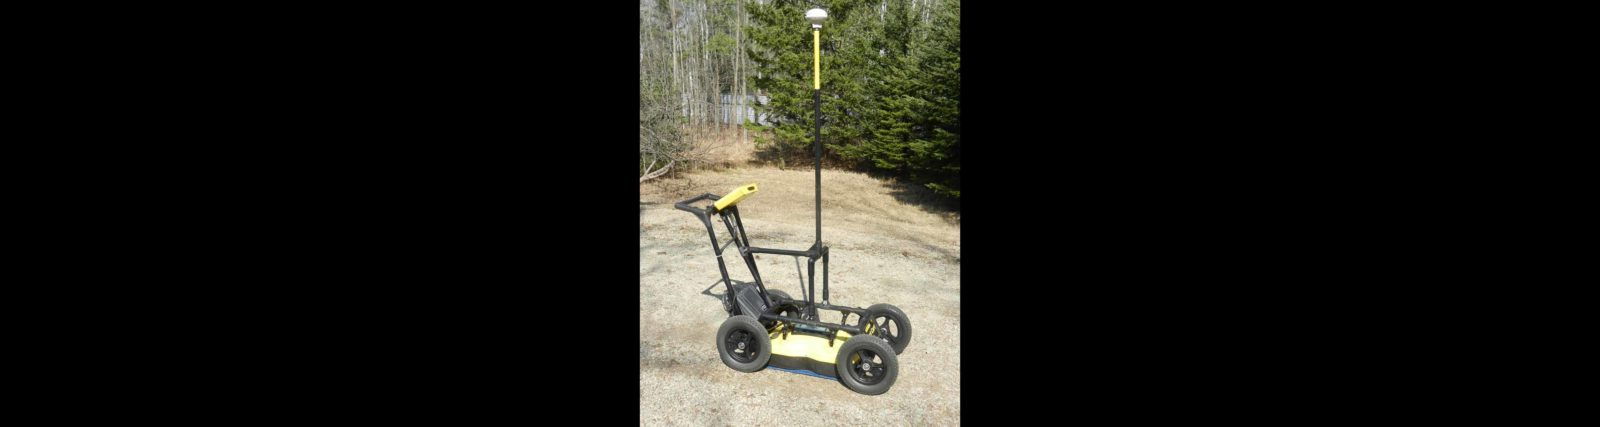 Noggin 250 GPR with GPS